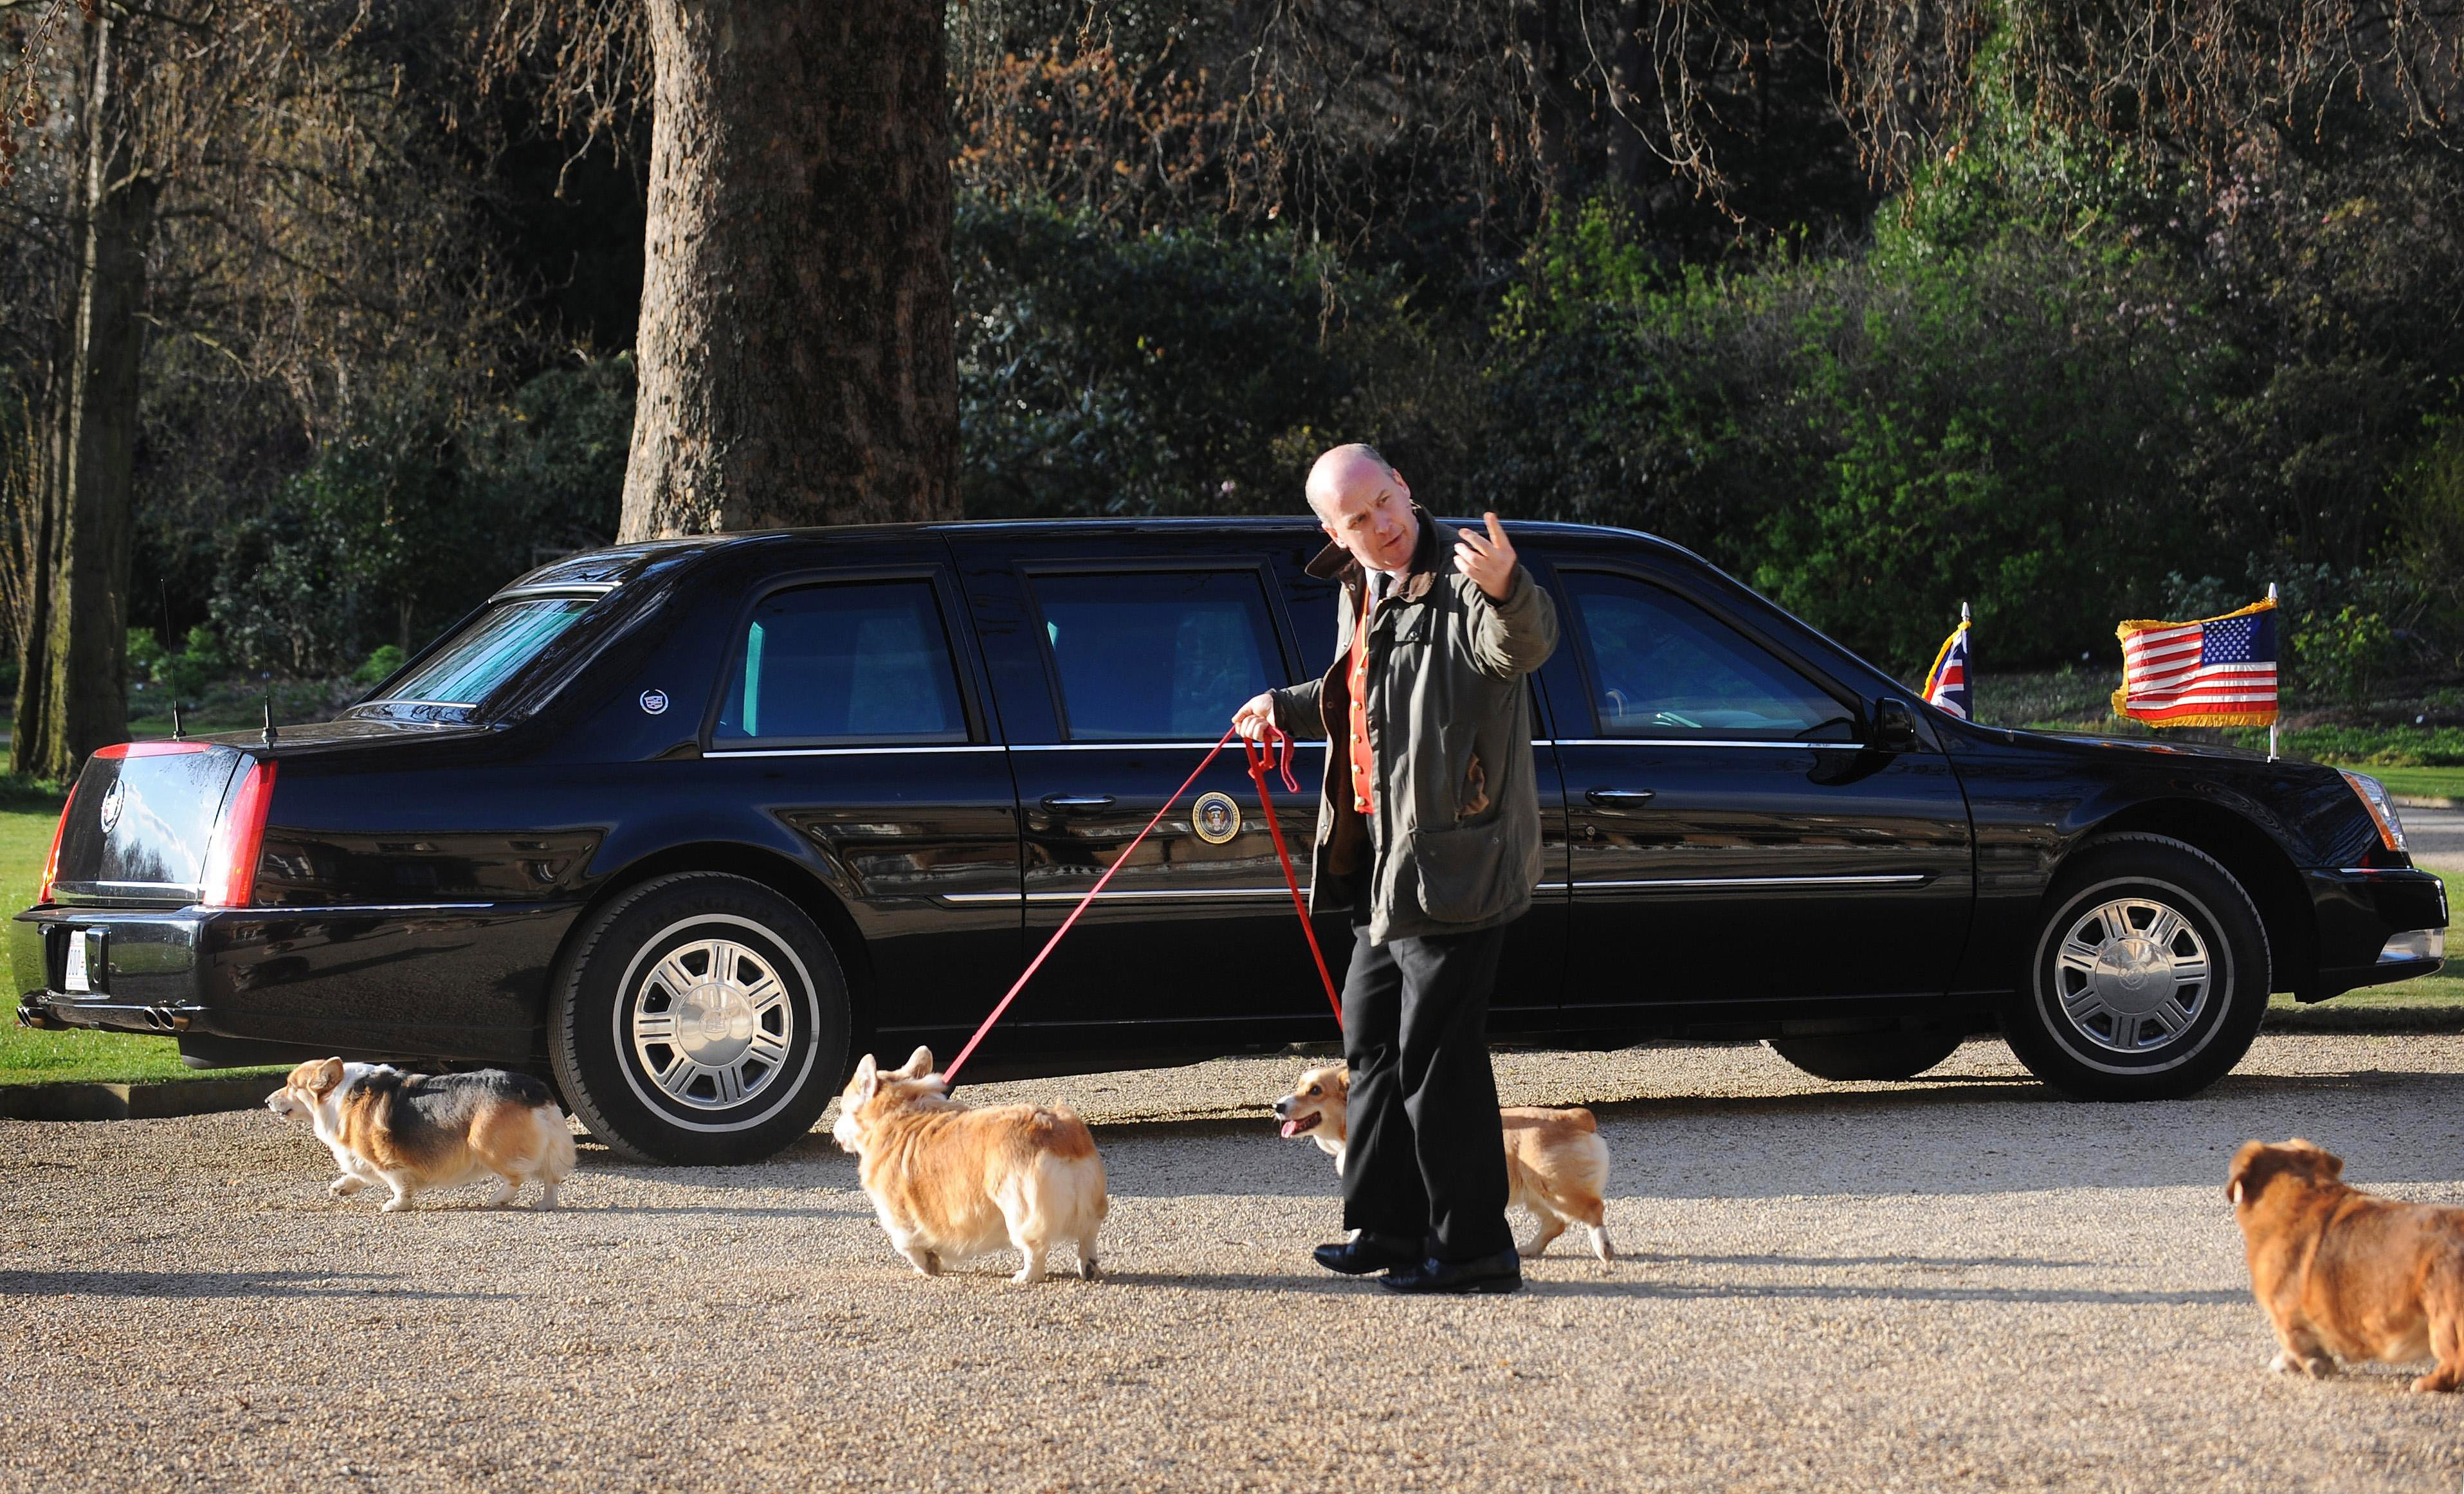 Queen Elizabeth II's Corgis are taken for a walk as they pass US President Barack Obama's car in the grounds of Buckingham Palace while he had an audience with the Queen on April 1, 2009 in London, England.  (Photo by Stefan Rousseau - WPA Pool/Getty Images)